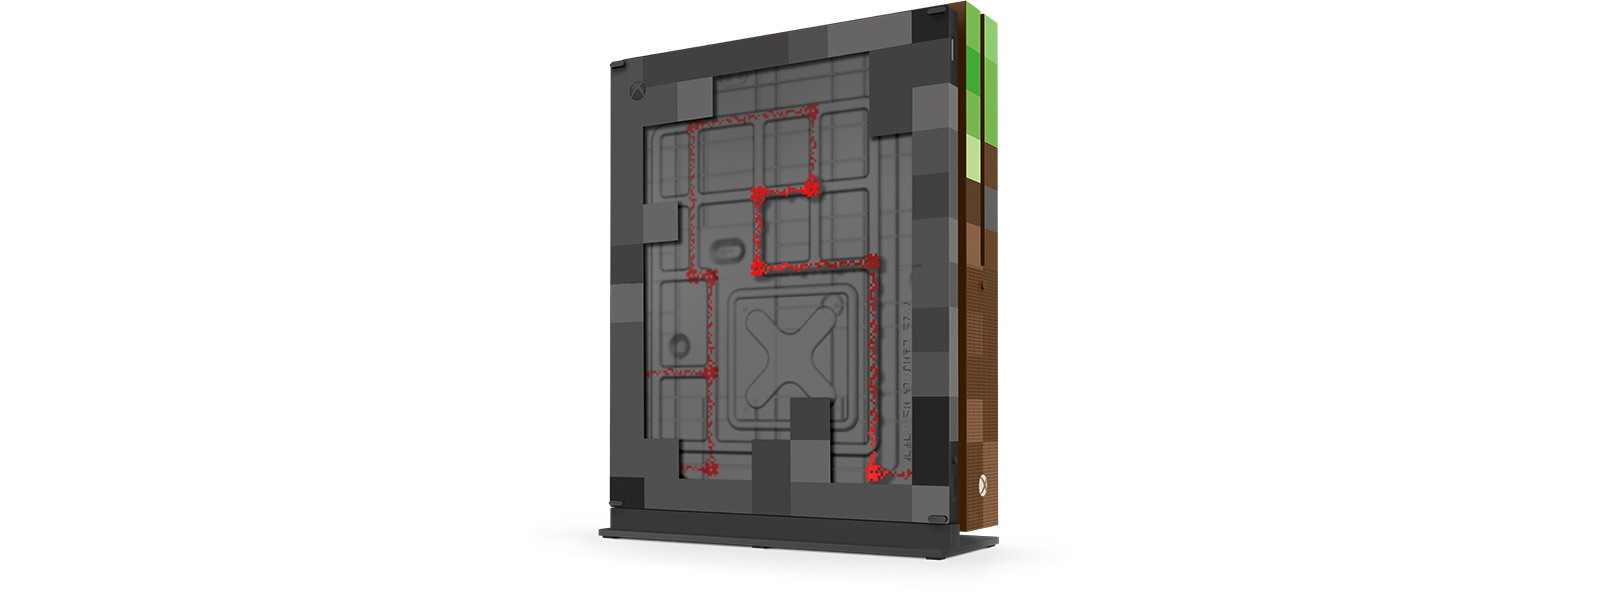 Xbox One S Minecraft Limited Edition Bundle back view